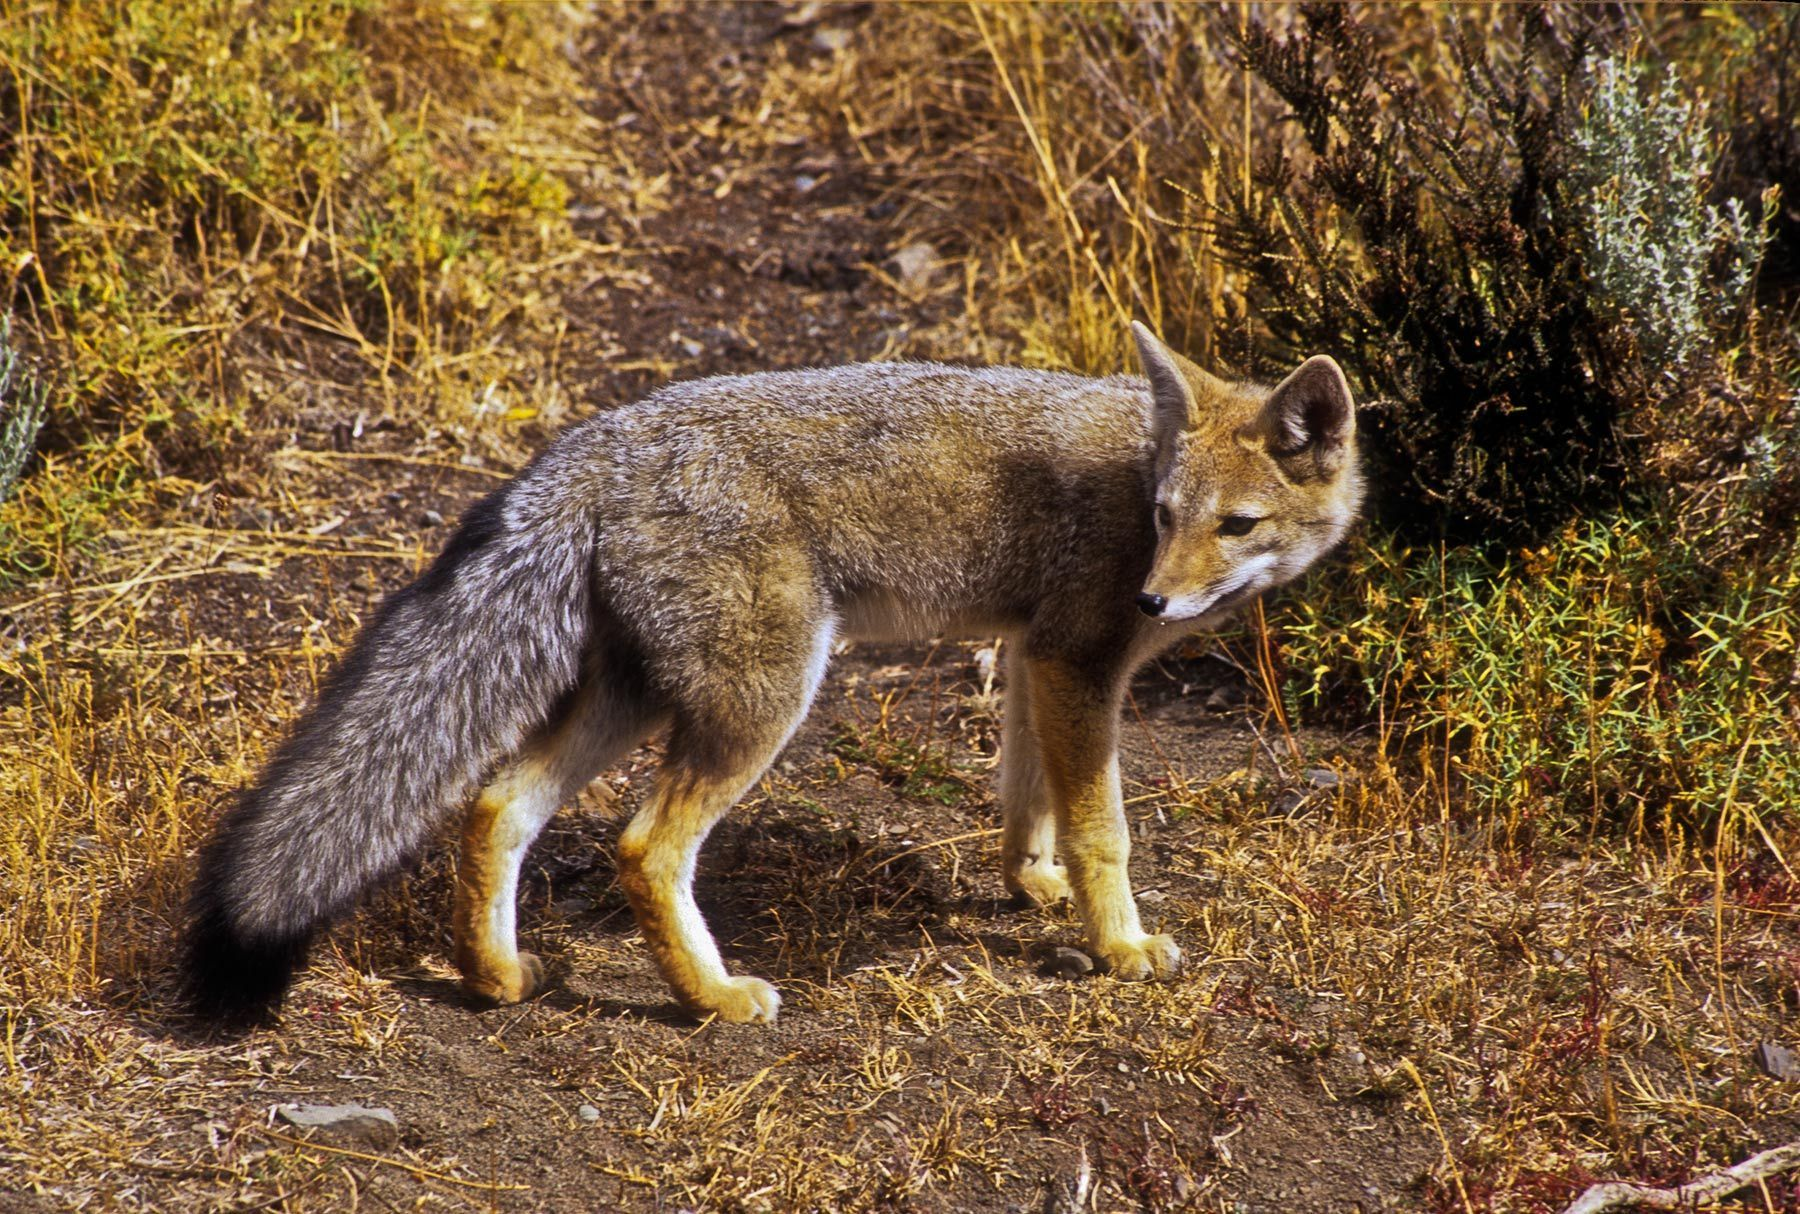 Grey Fox, Torres del Paine National Park, Chile